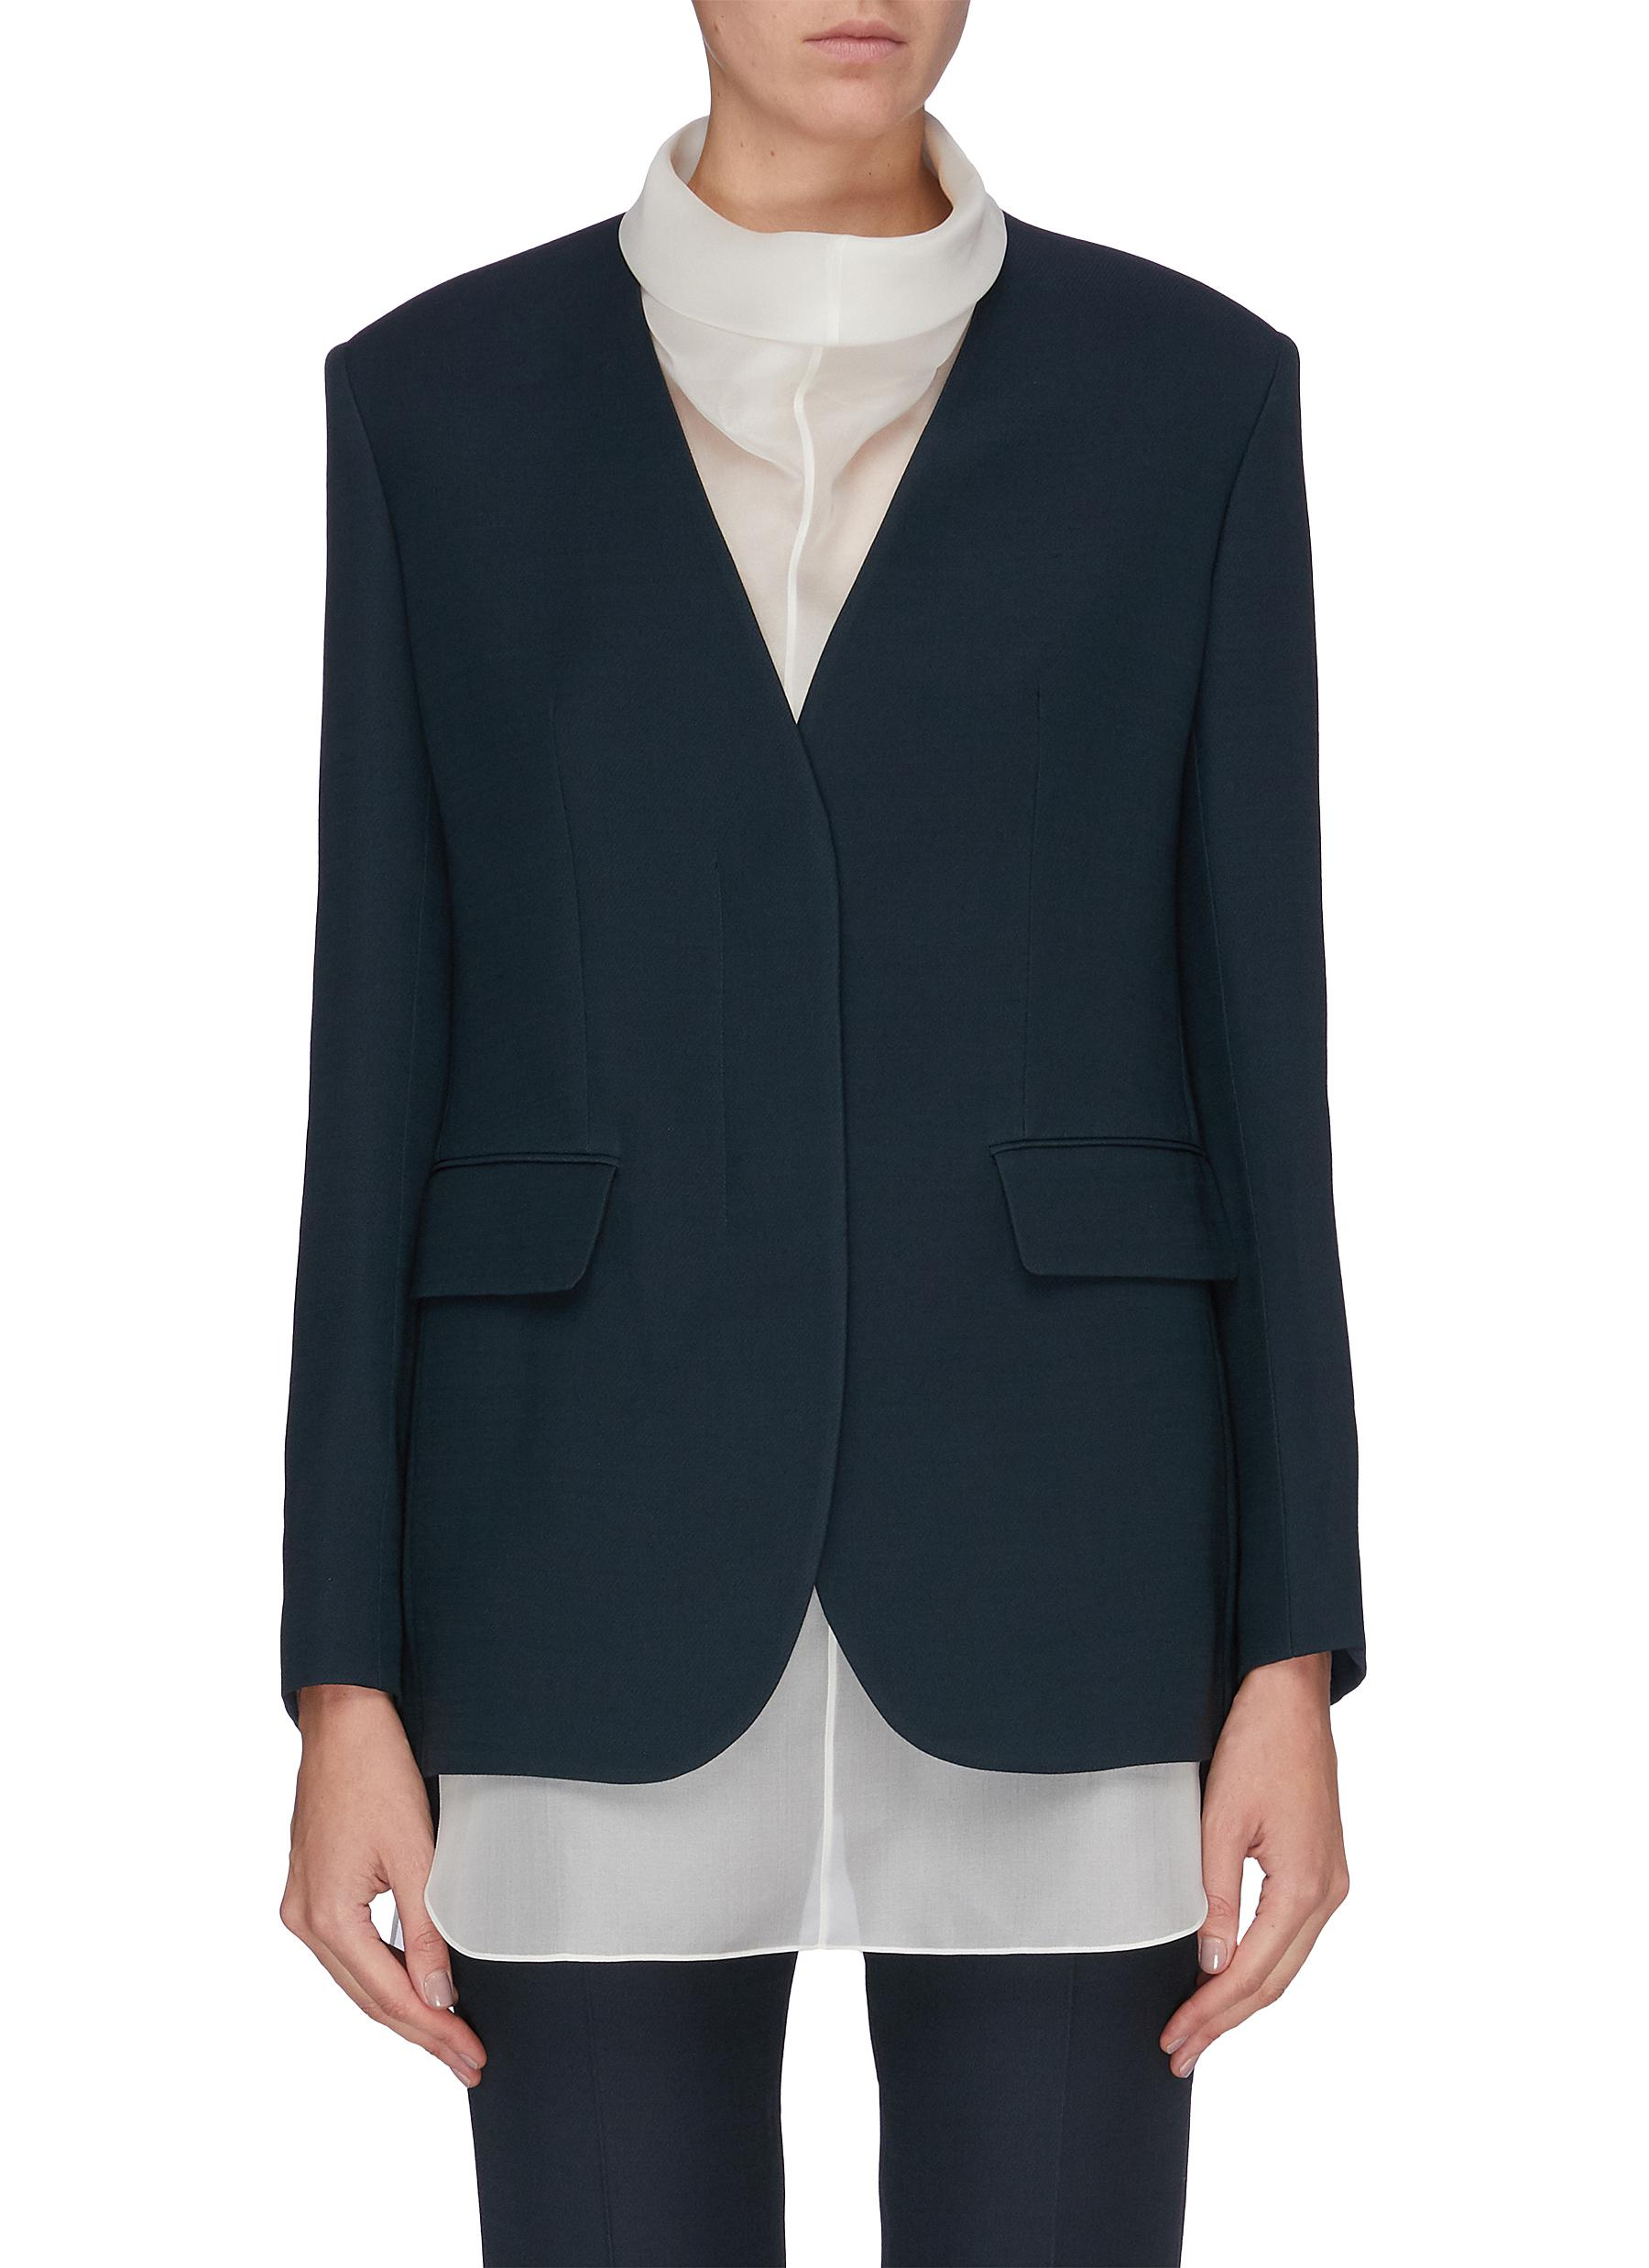 Murray single-breasted wool silk blend blazer by The Row